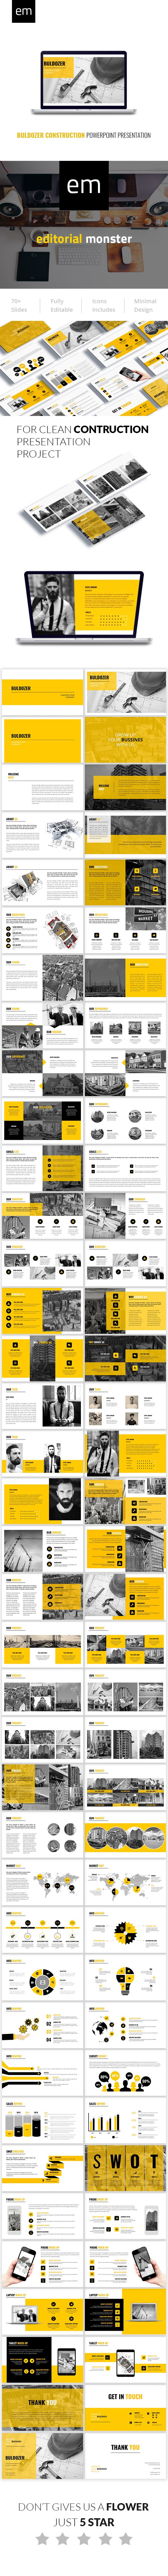 25 beautiful business powerpoint presentation ideas on pinterest buldozer construction powerpoint presentation toneelgroepblik Gallery